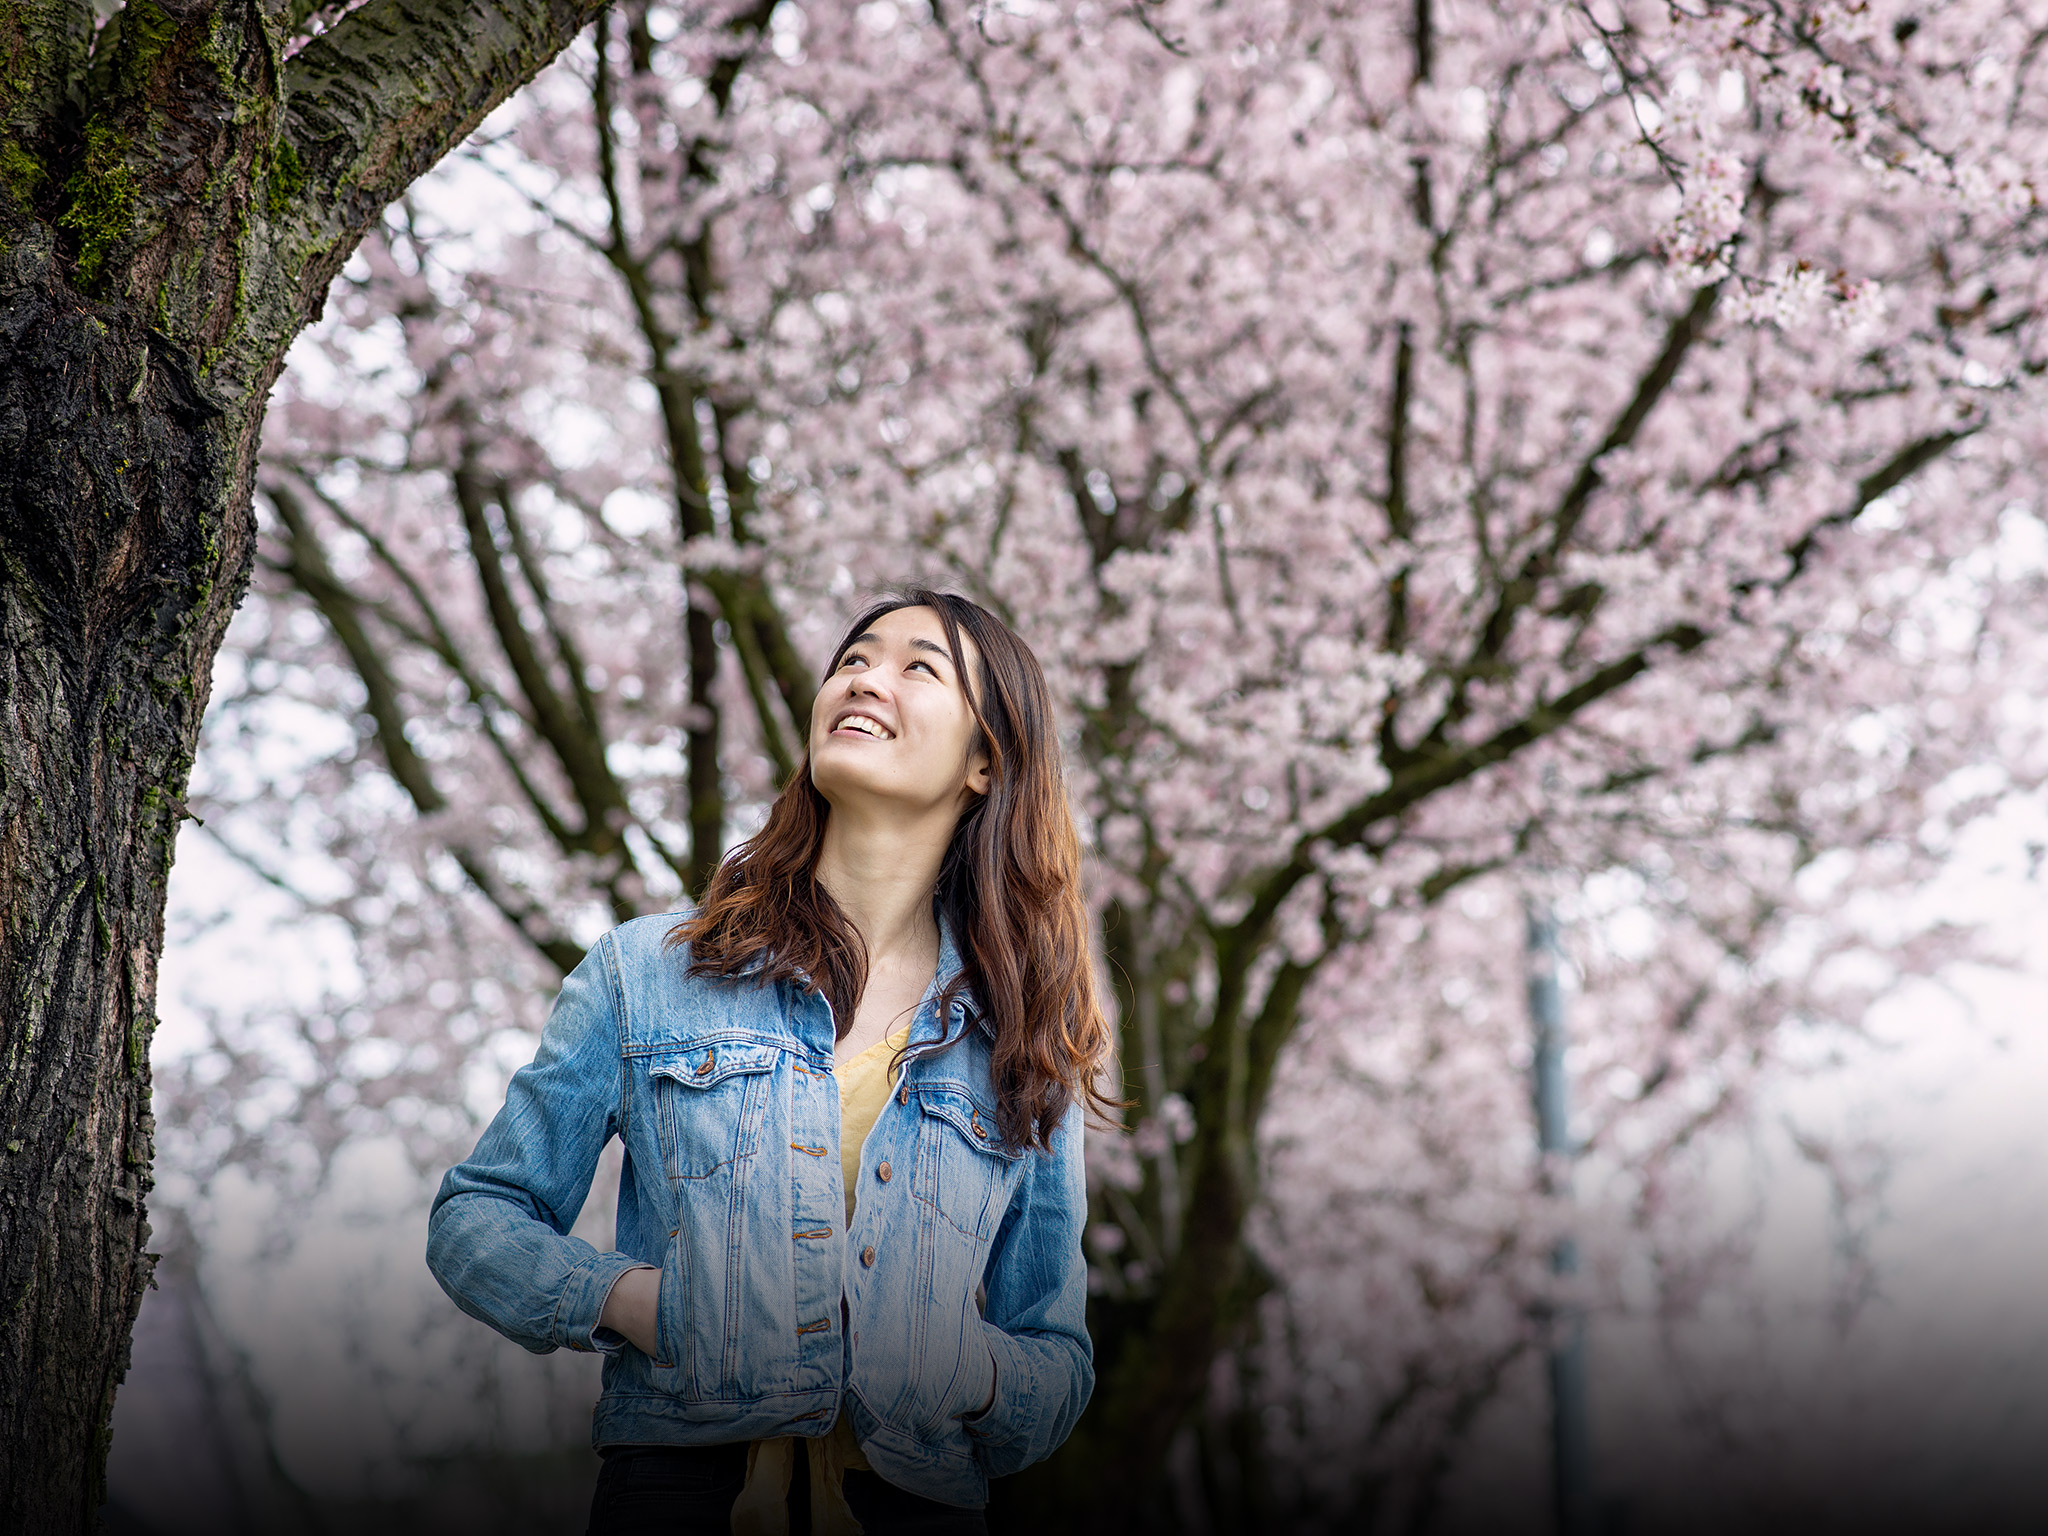 Ringing in Spring: Cherry Blossoms